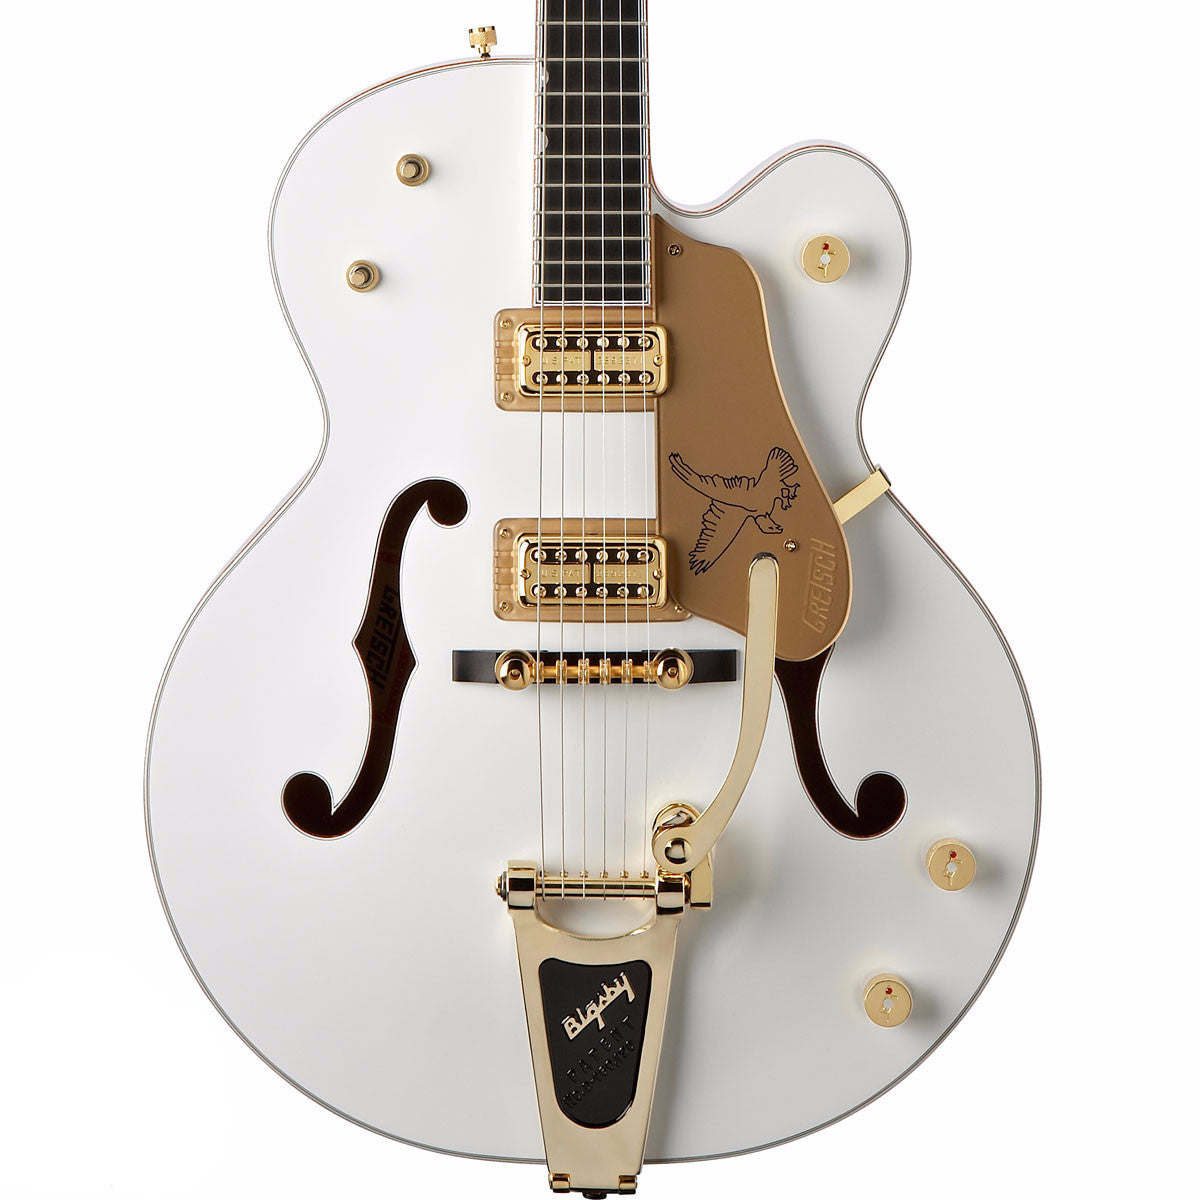 Gretsch G6136T - White Falcon w/Bigsby - Vintage Guitar Boutique - 1